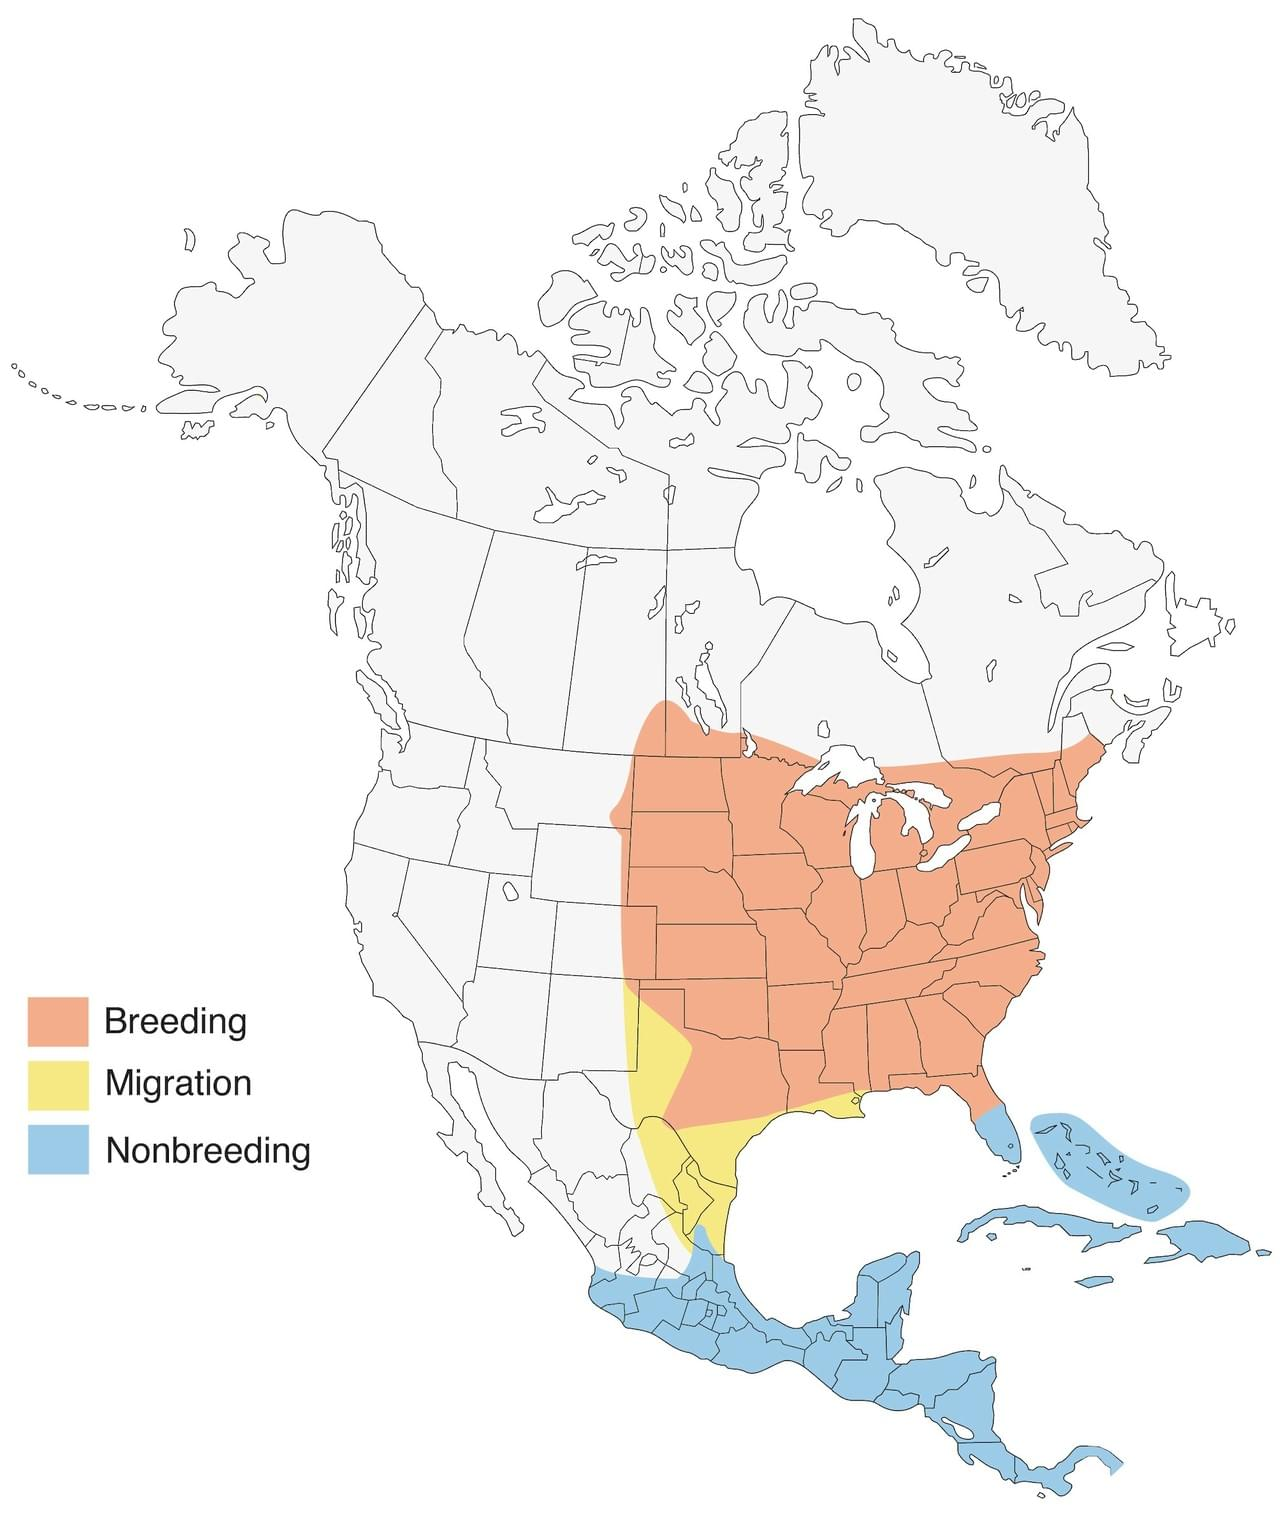 Indigo bunting range map by Cornell Lab of Ornithology